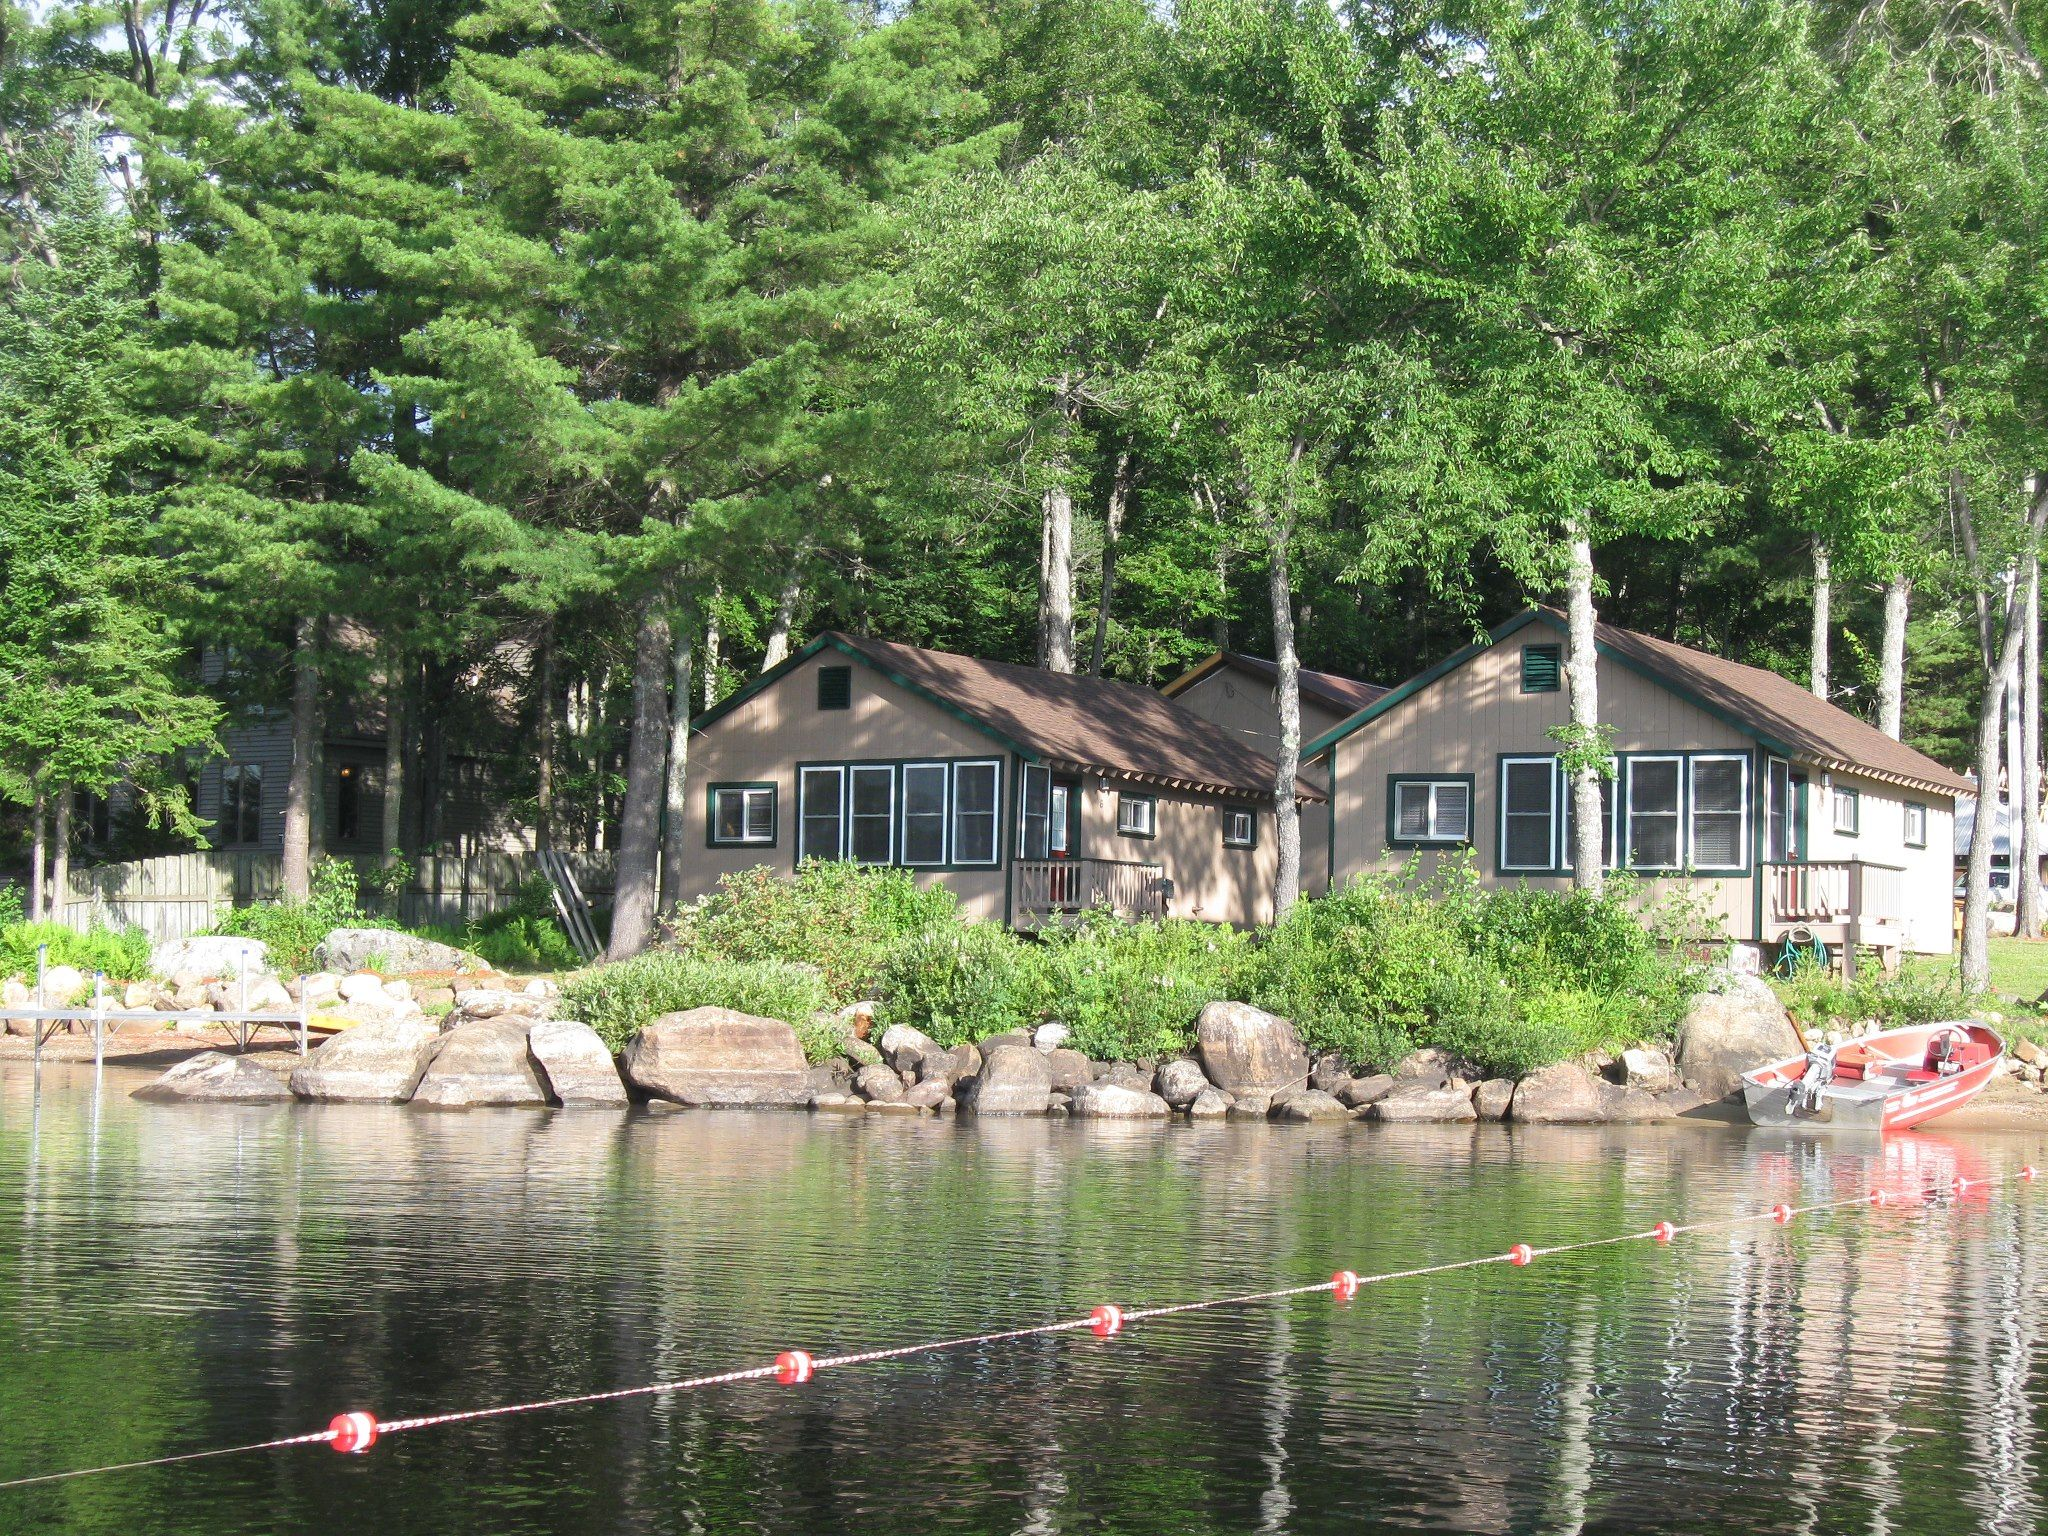 cabin casita la apartment is rent cabins sixth our lake on upstate garage loftrapunzel ny